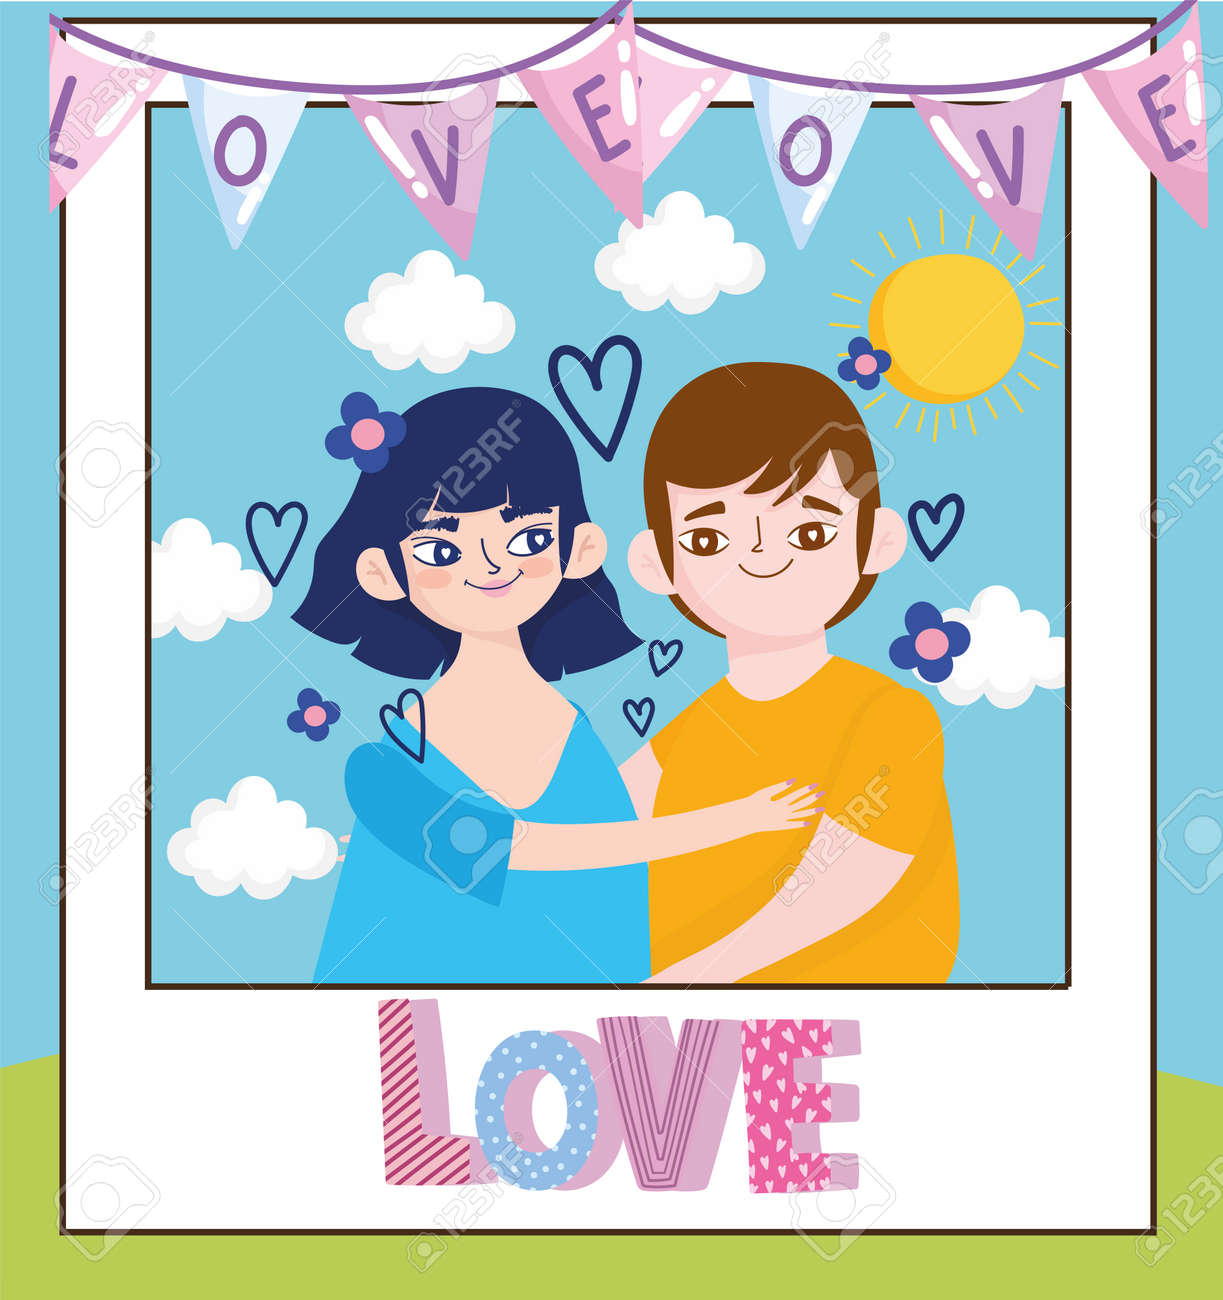 love couple in photo - 171587500